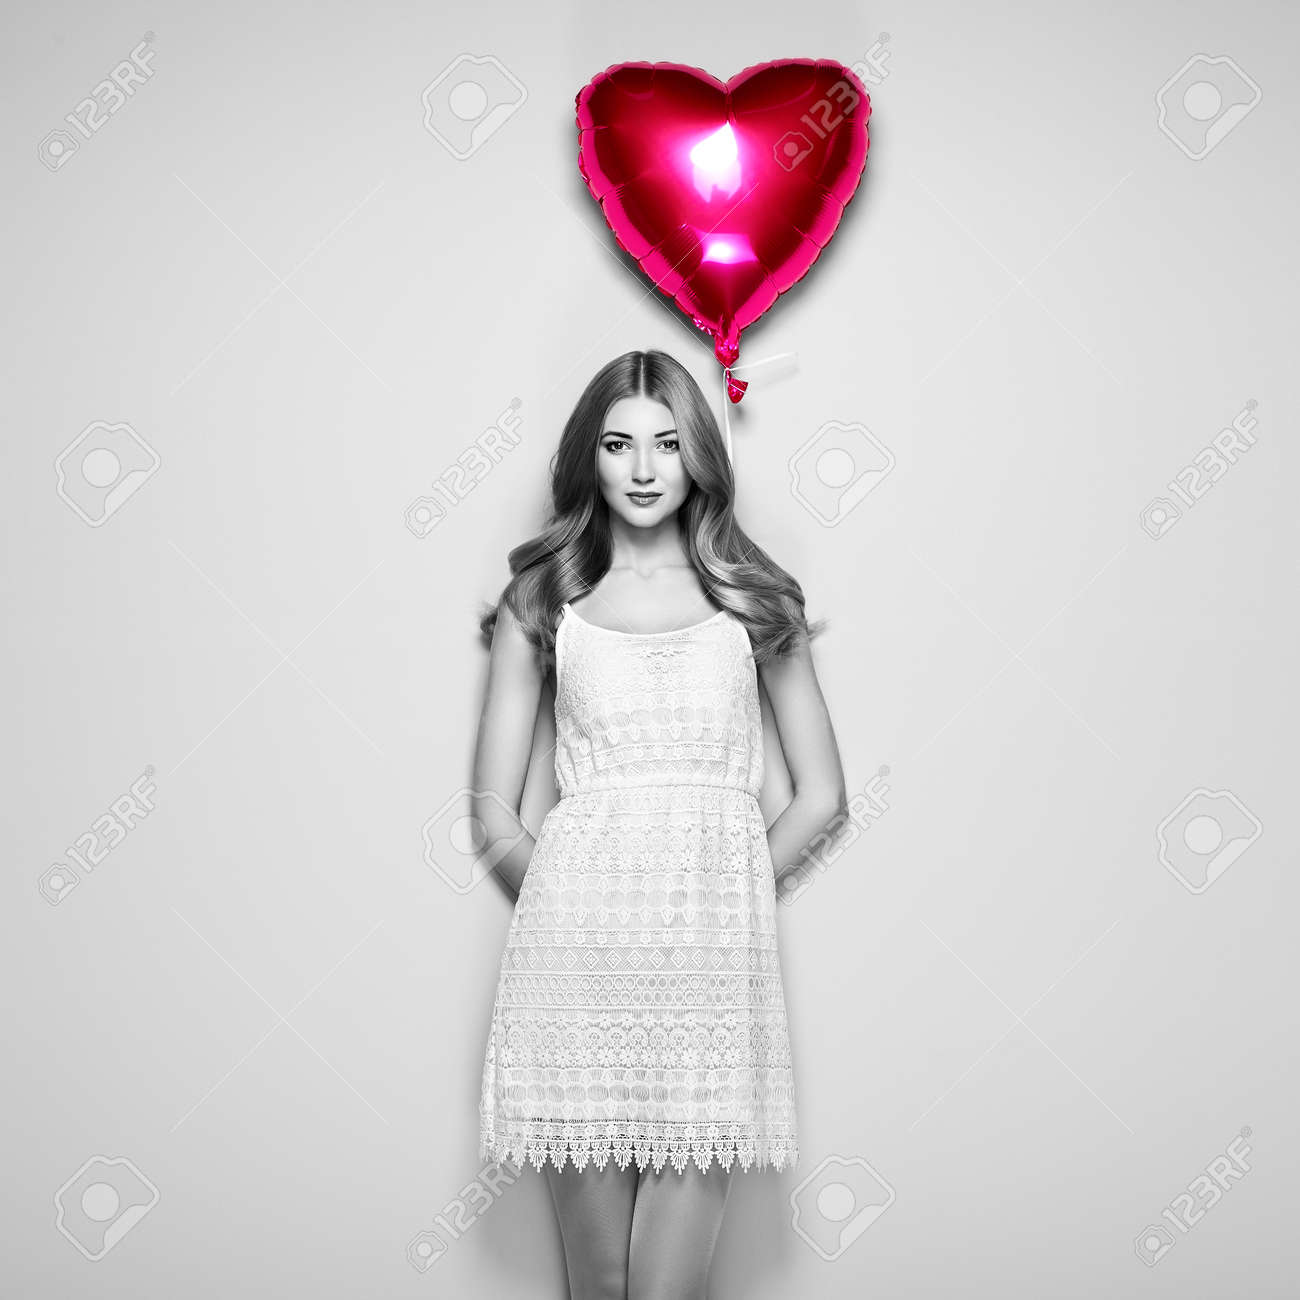 Black And White Photo Beautiful Young Woman With Heart Shape Stock Photo Picture And Royalty Free Image Image 73868587